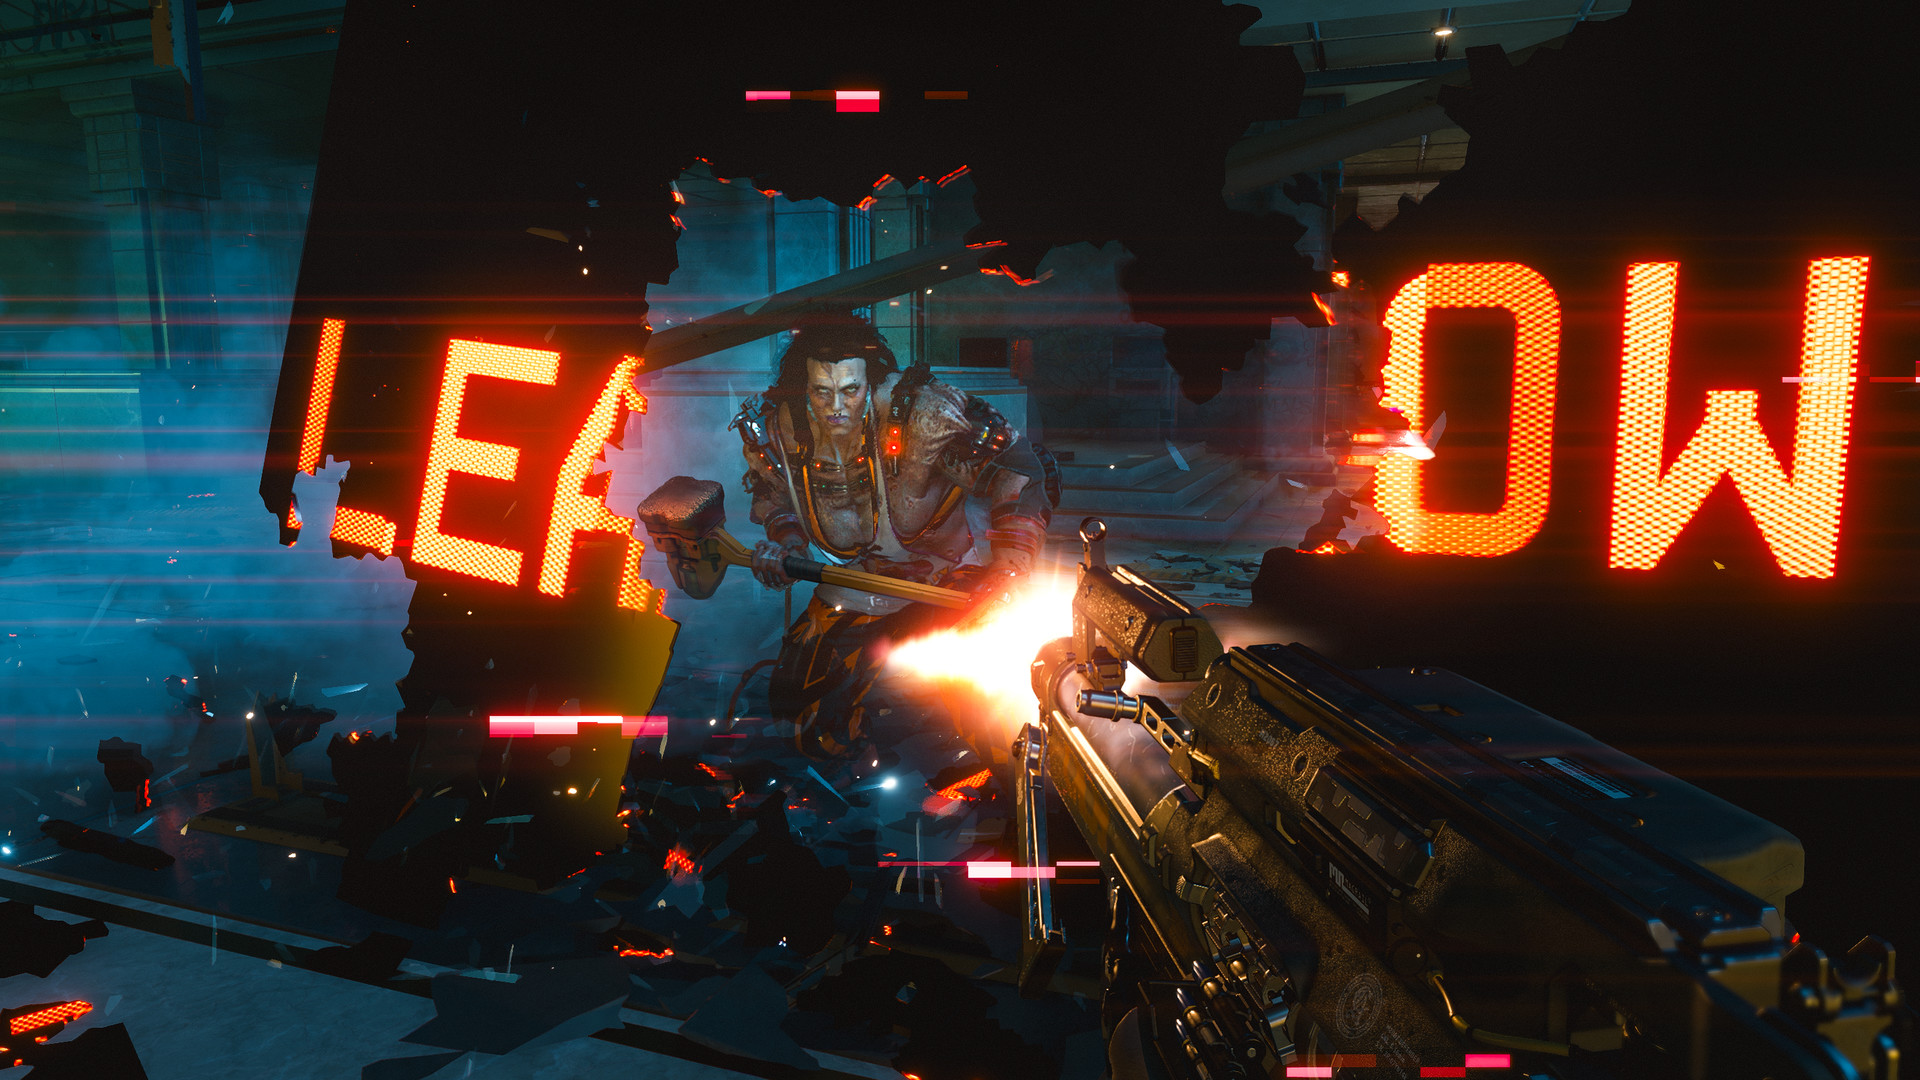 Does Cyberpunk 2077 have microtransactions? | Gamepur